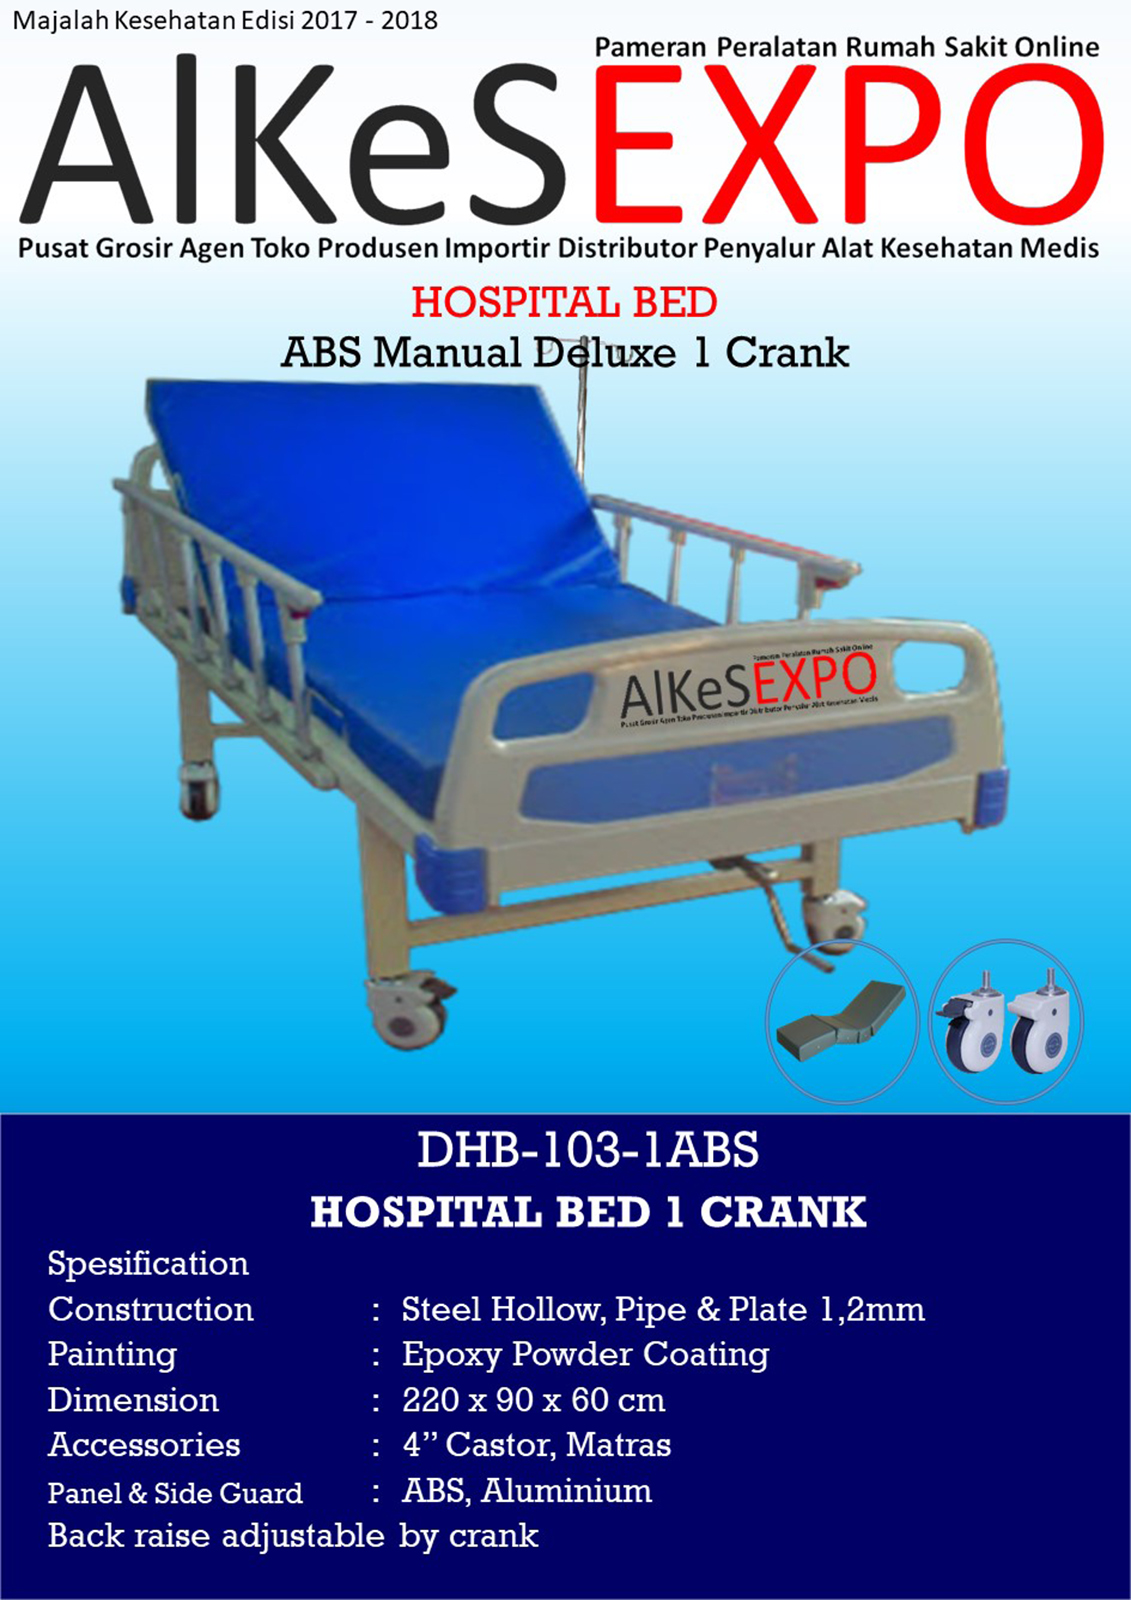 Hospital Bed Manual Deluxe 1 Crank DHB-103-ABS